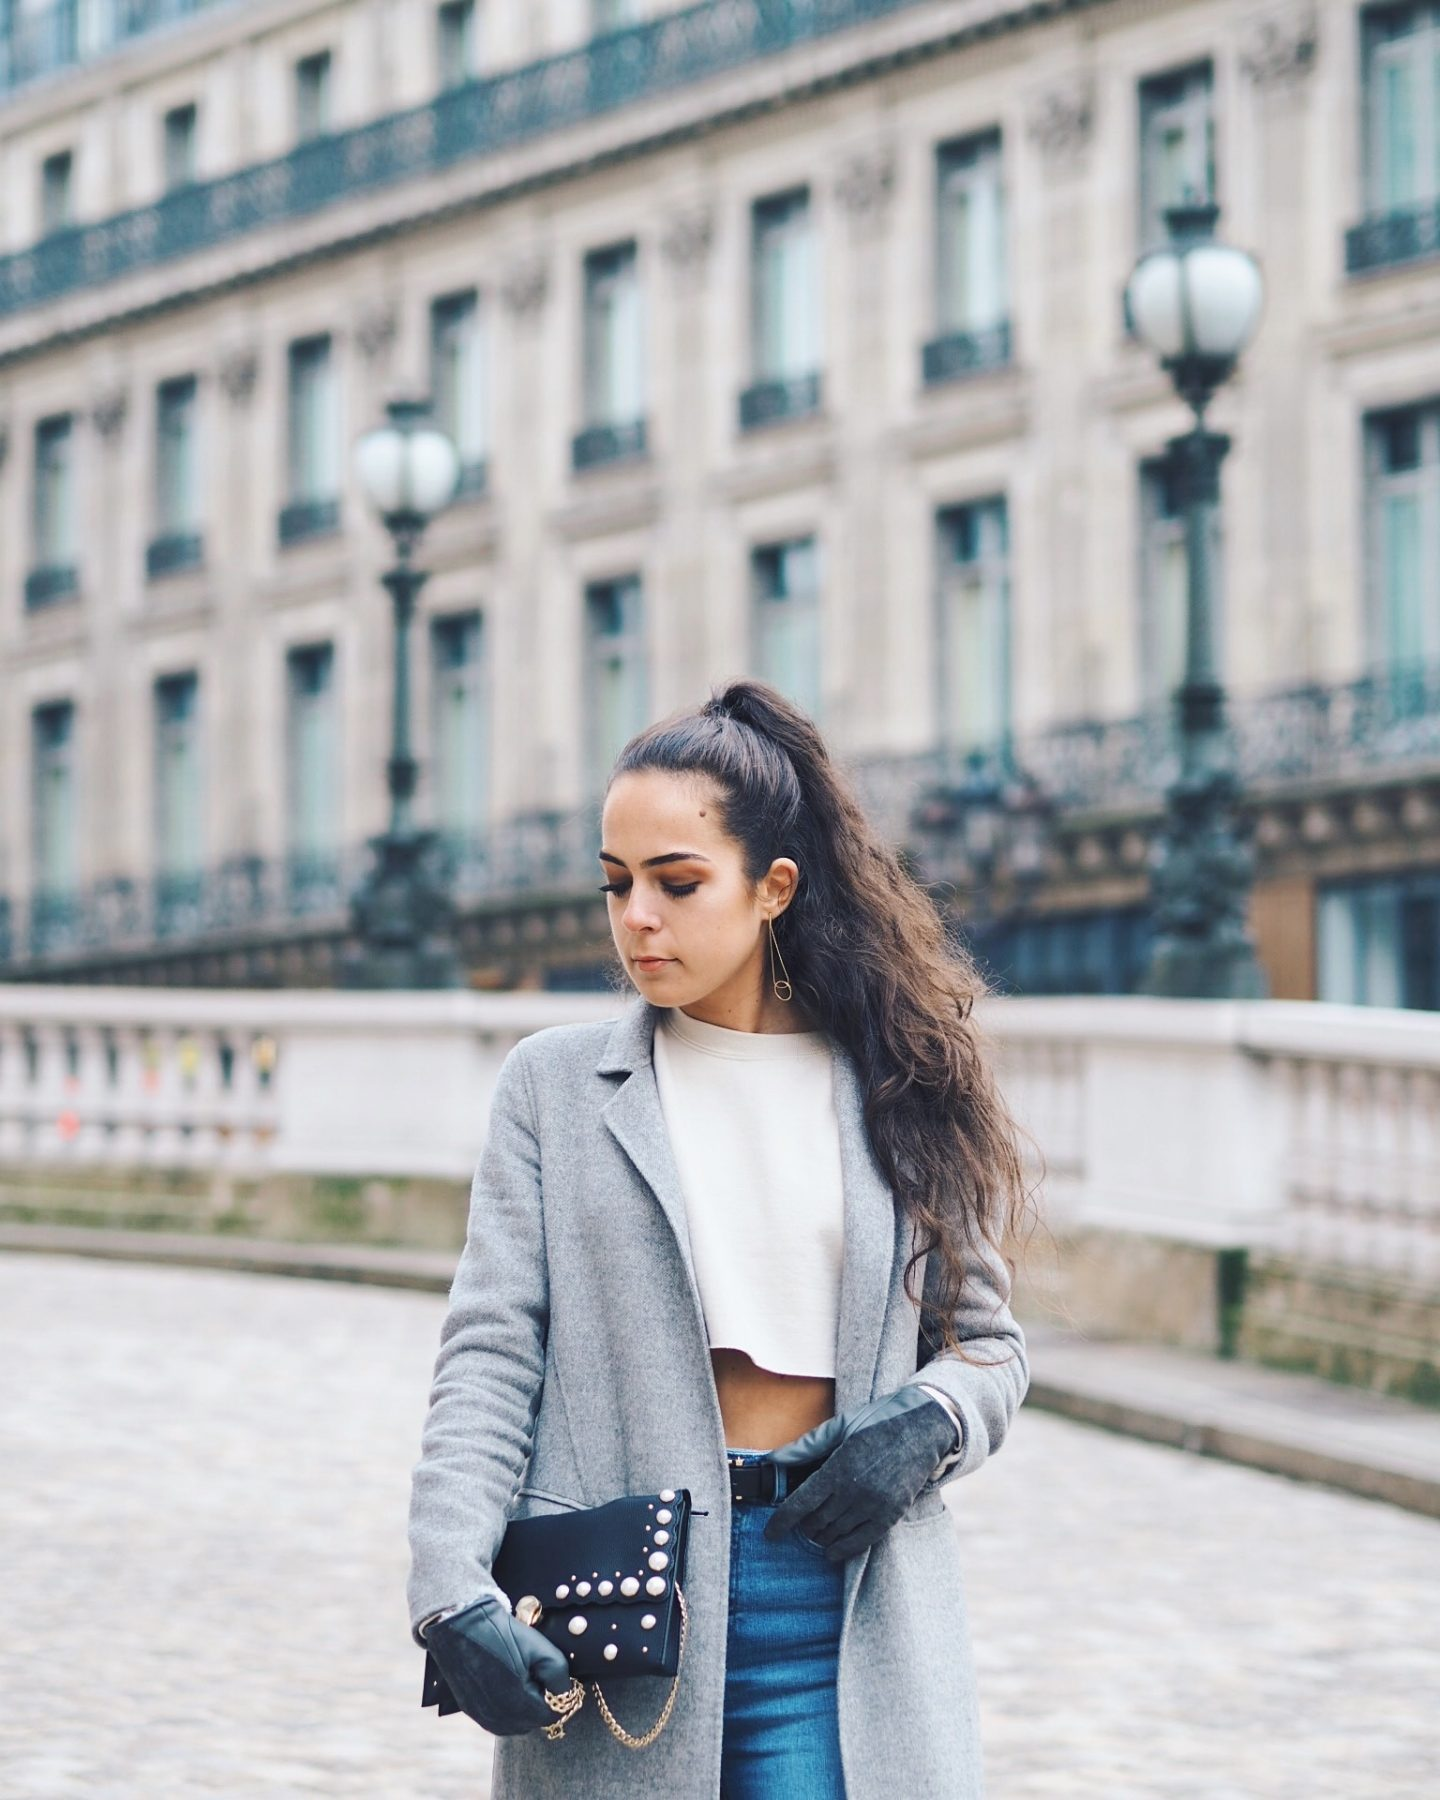 THE PARIS OUTFIT DIARIES